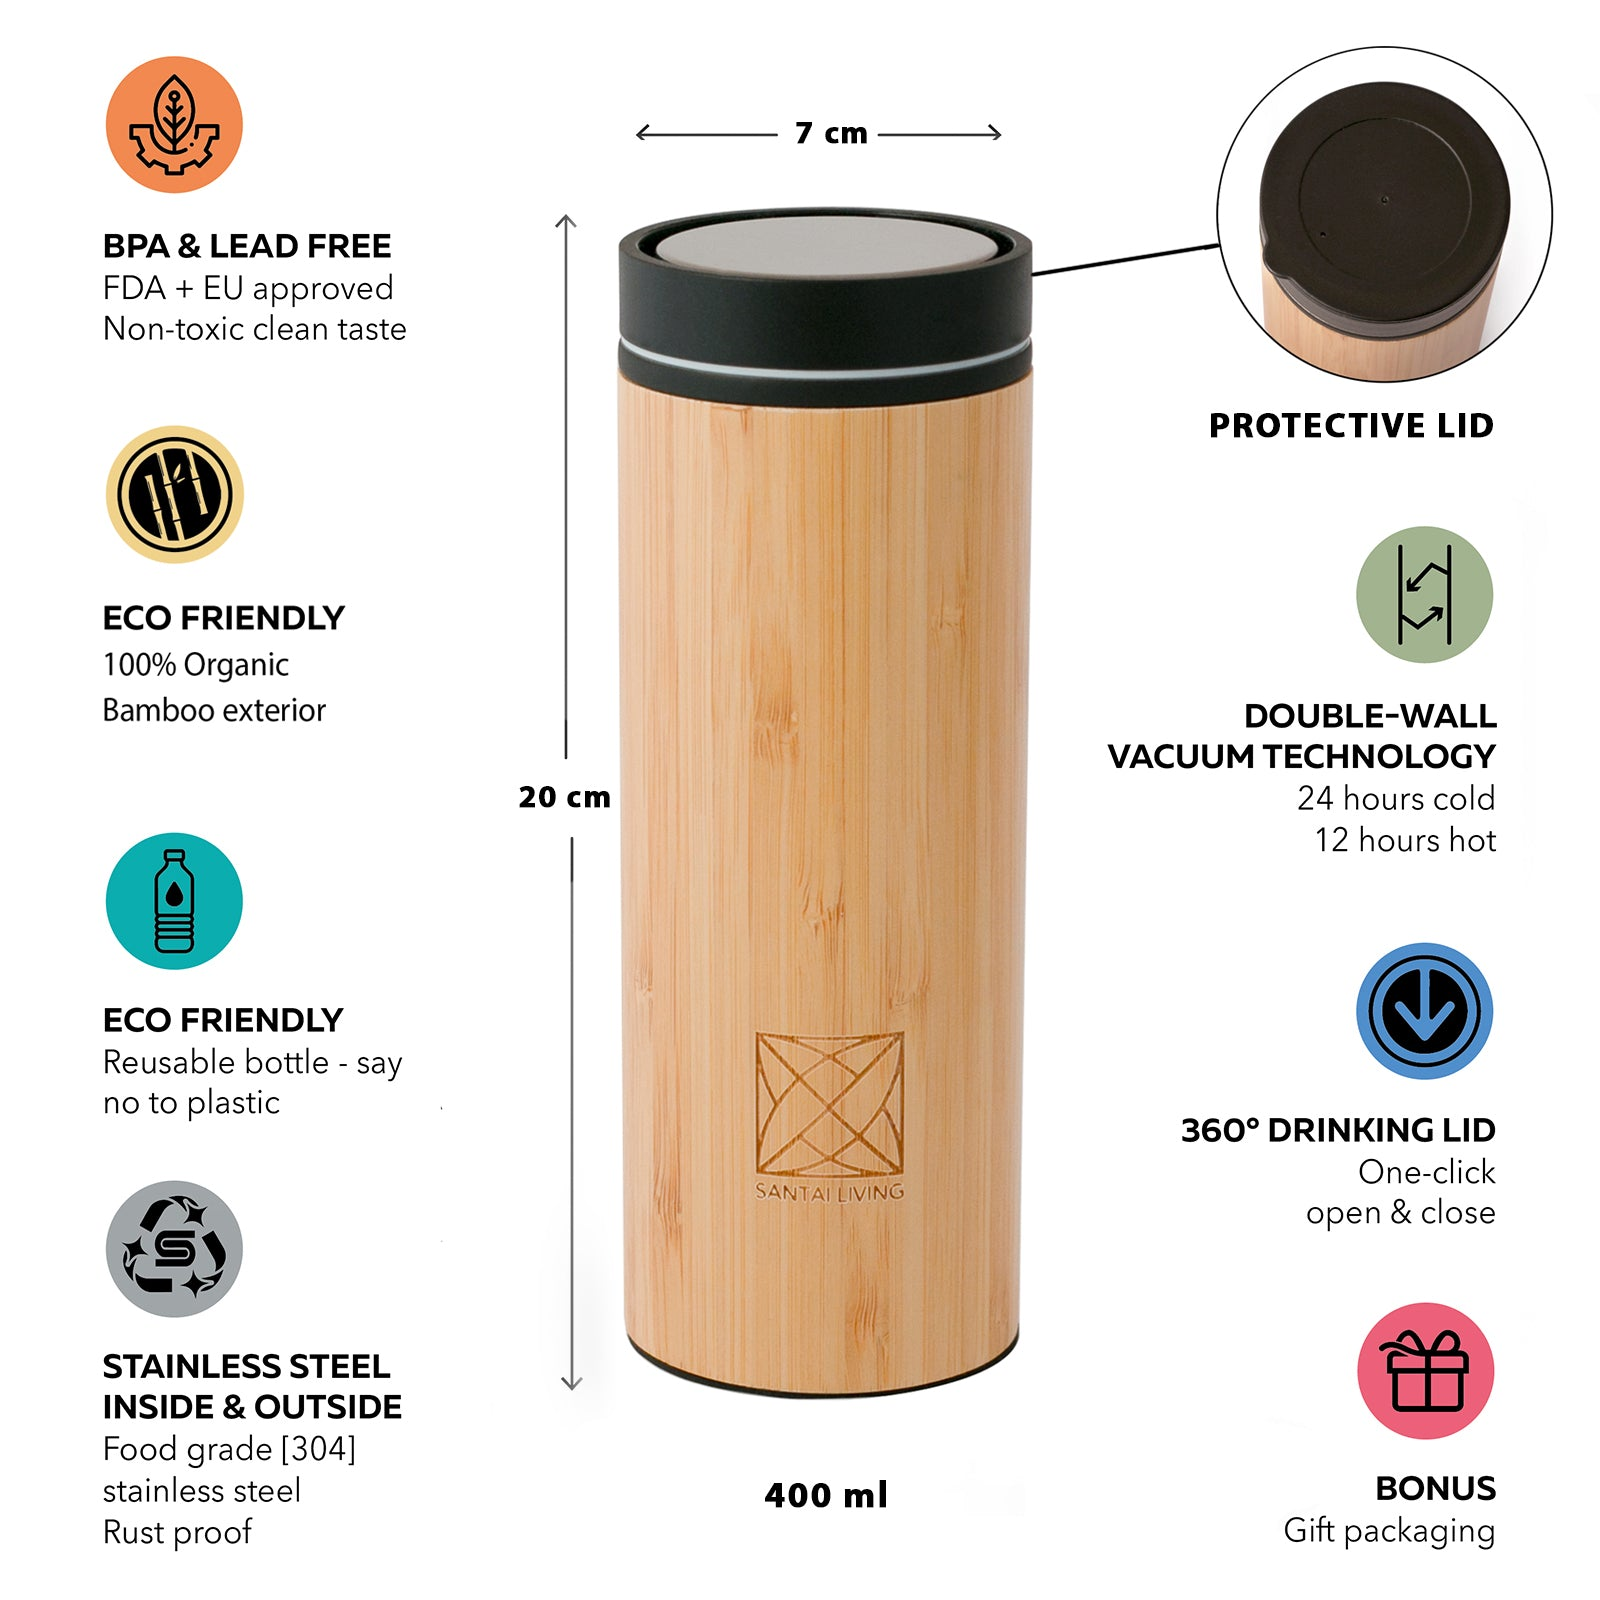 2021 Santai Living Click Open Vacuum-Insulated Travel Mug Double Walled Steel